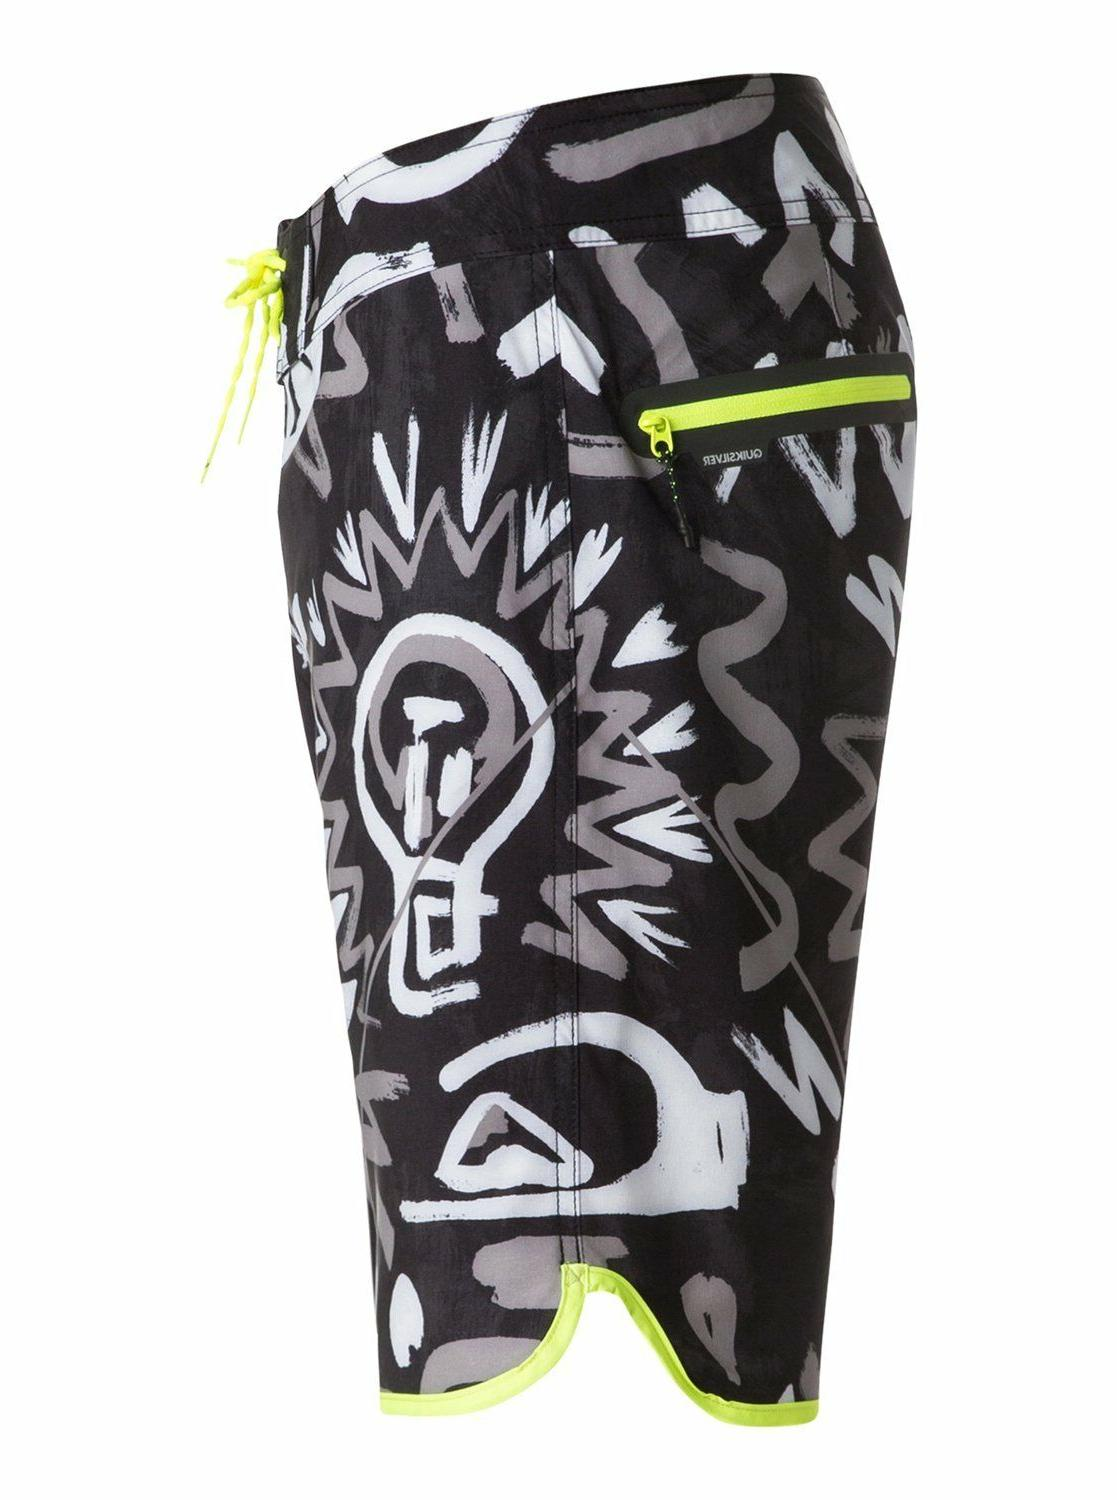 New Boardshort STEEPLE